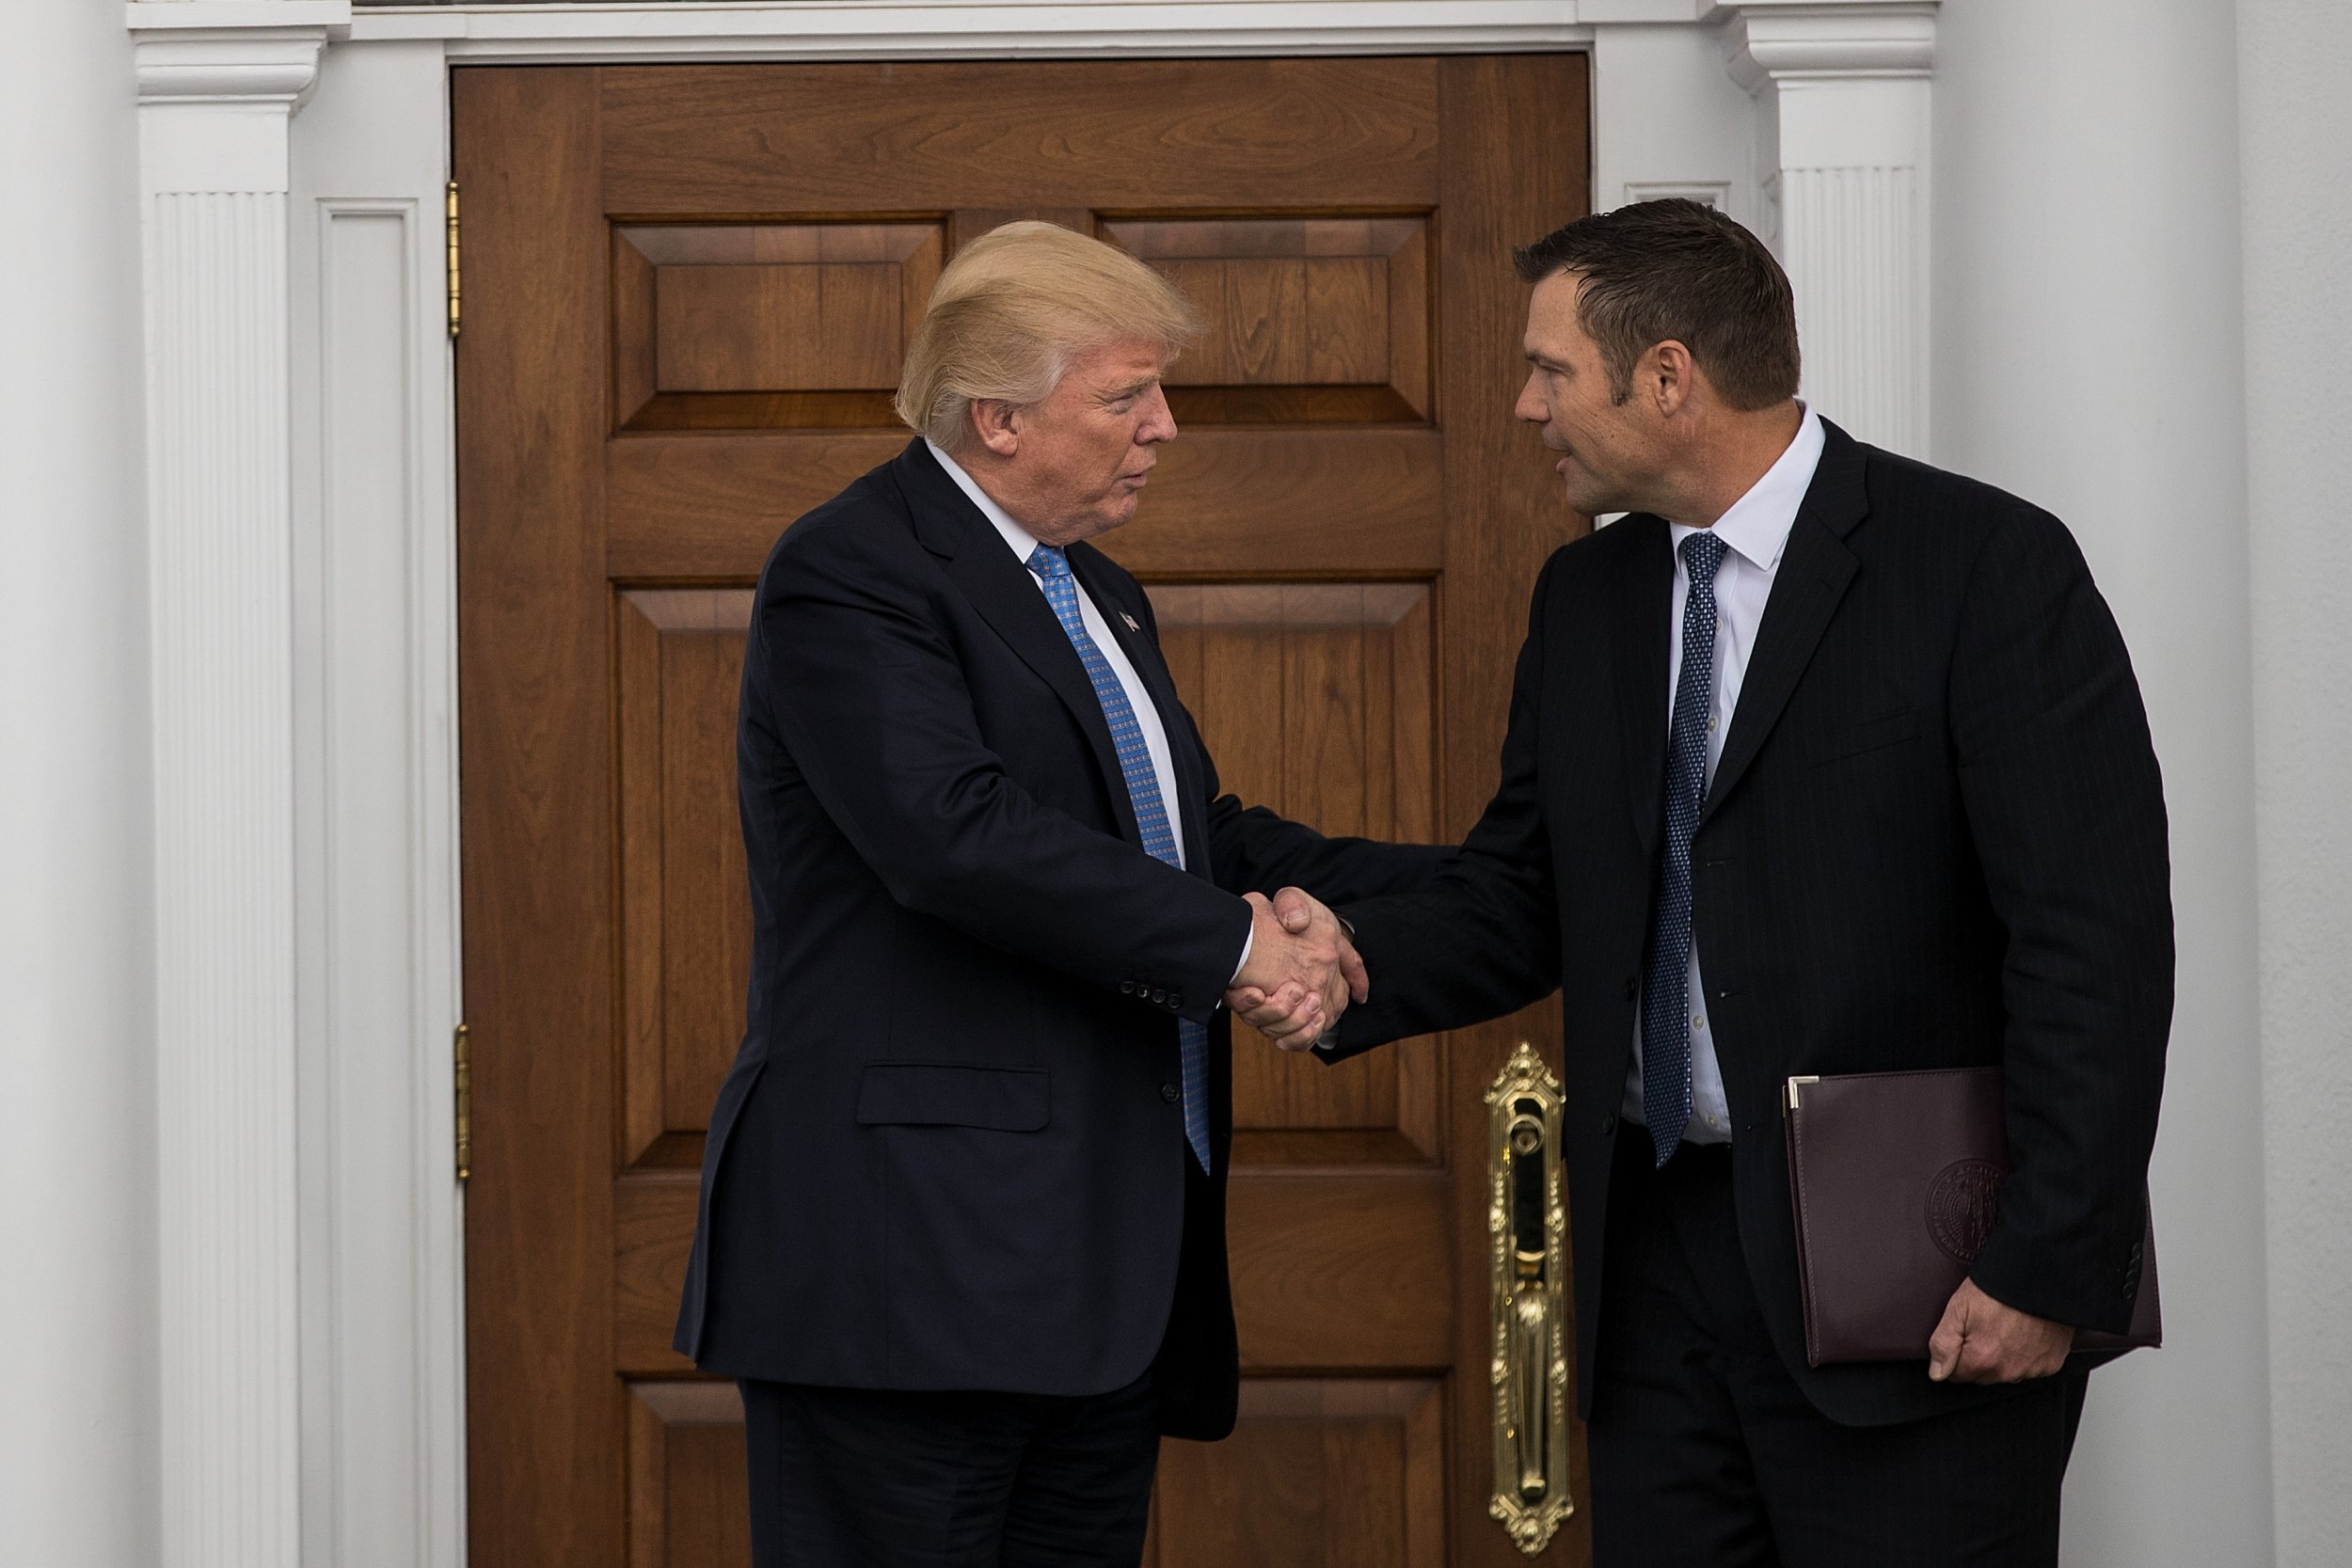 Kobach and Trump